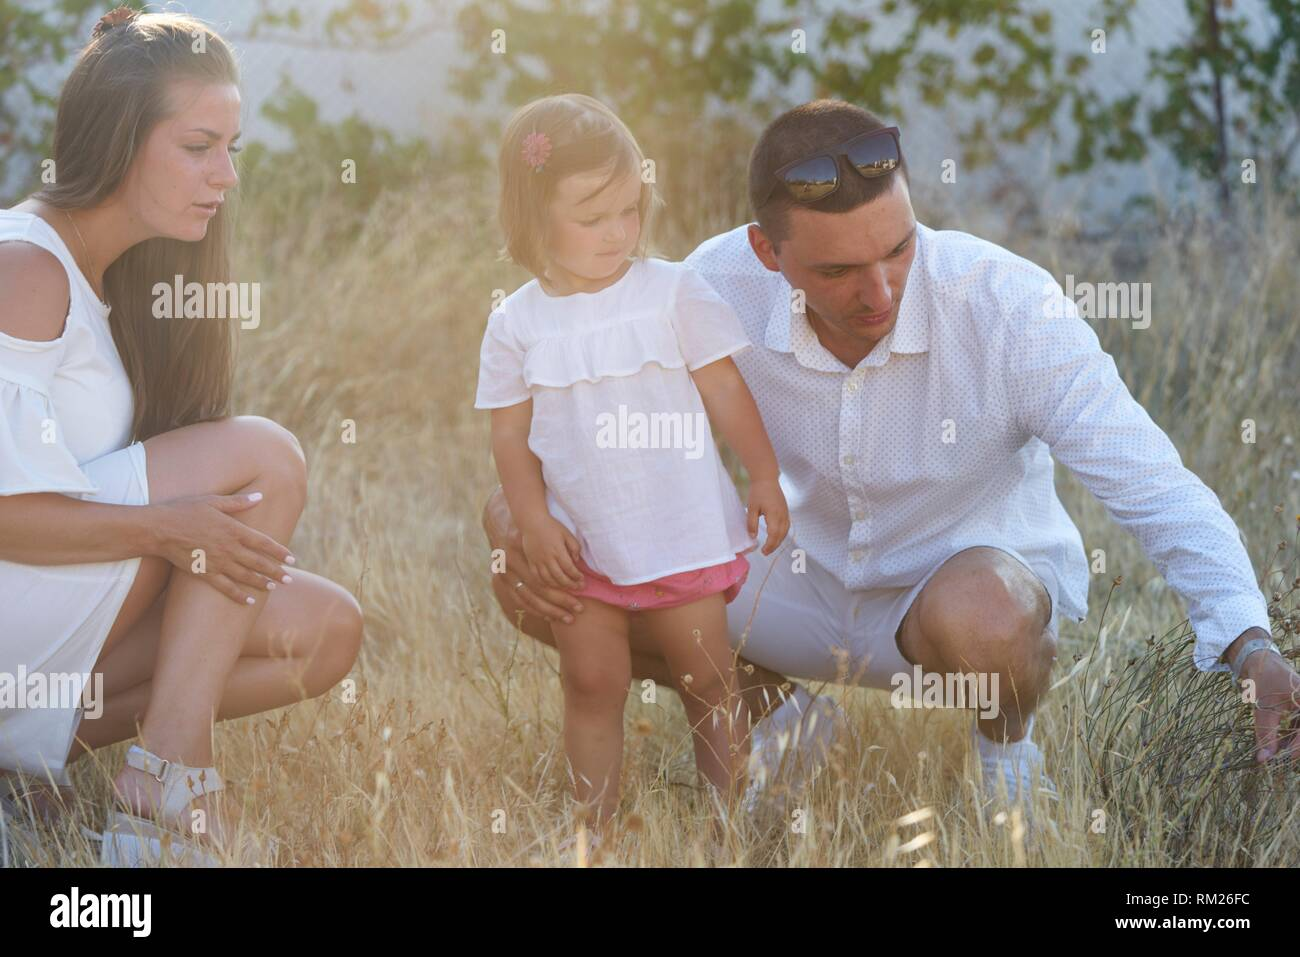 parents with toddler daughter exploring nature in garden - Stock Image